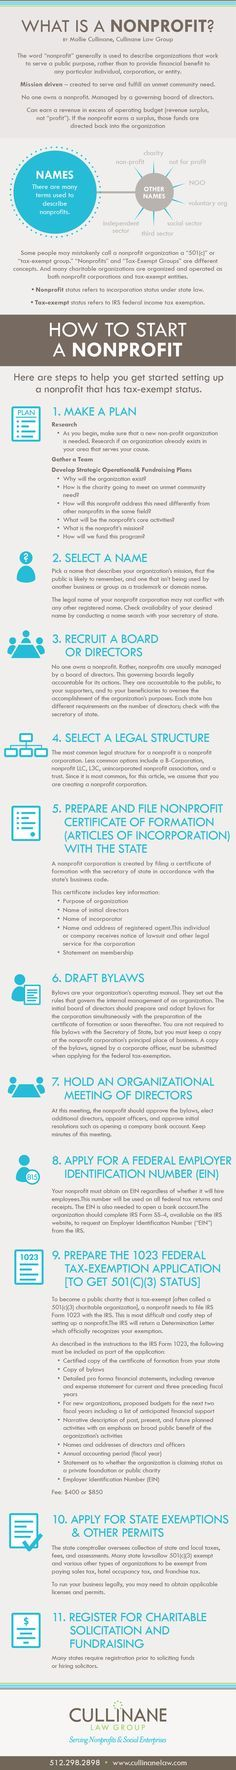 nonprofit budget template Nonprofit Technology Pinterest - video editor resume template